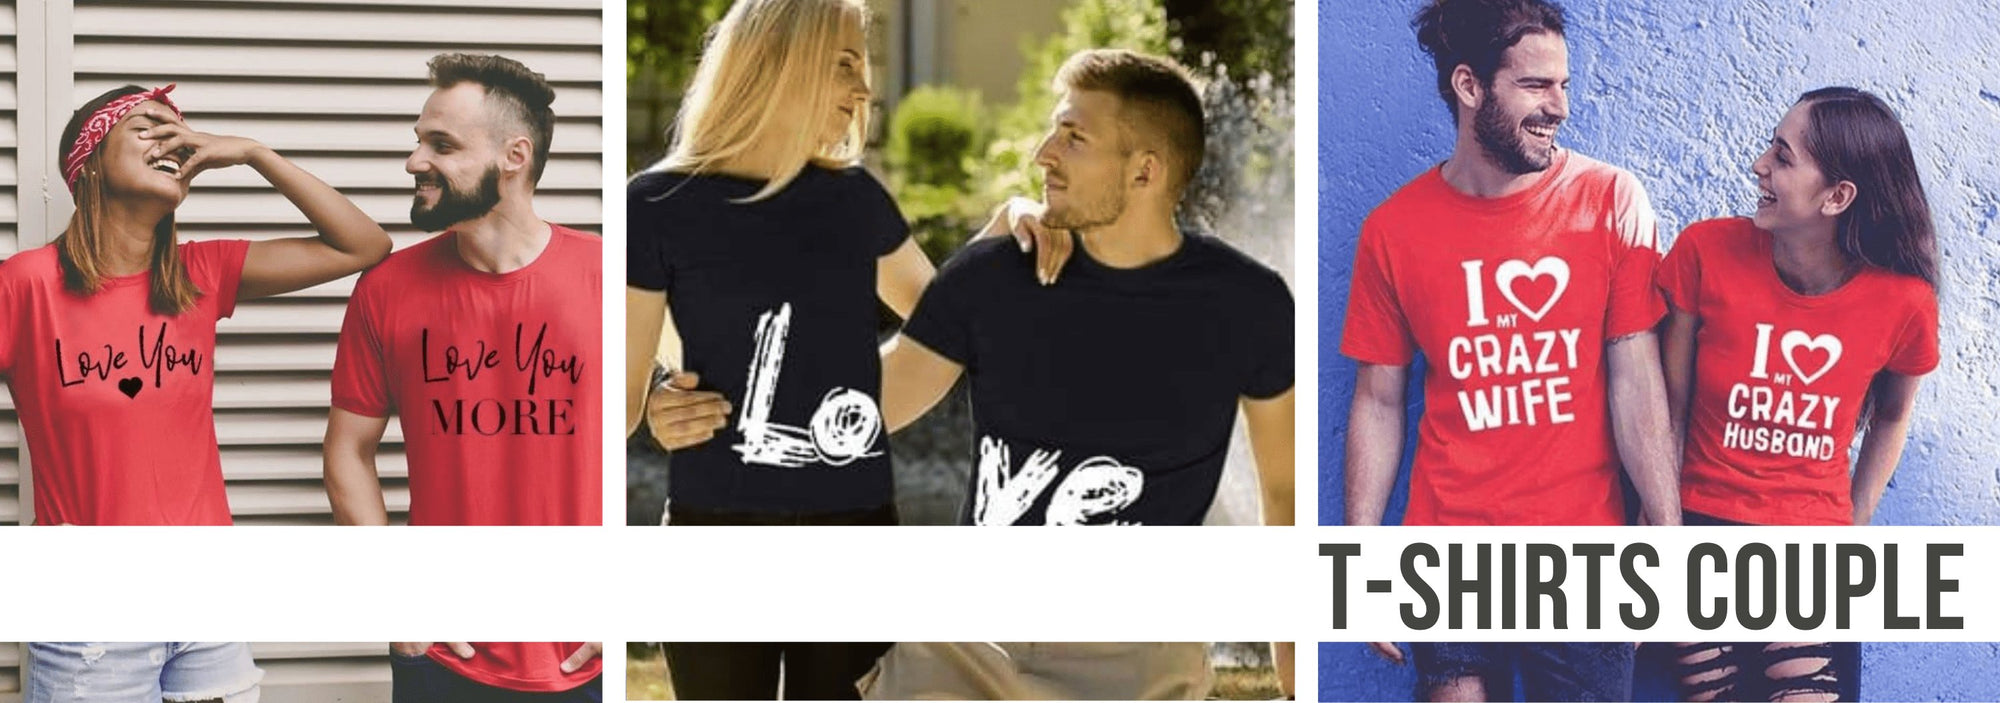 T-Shirts Couple